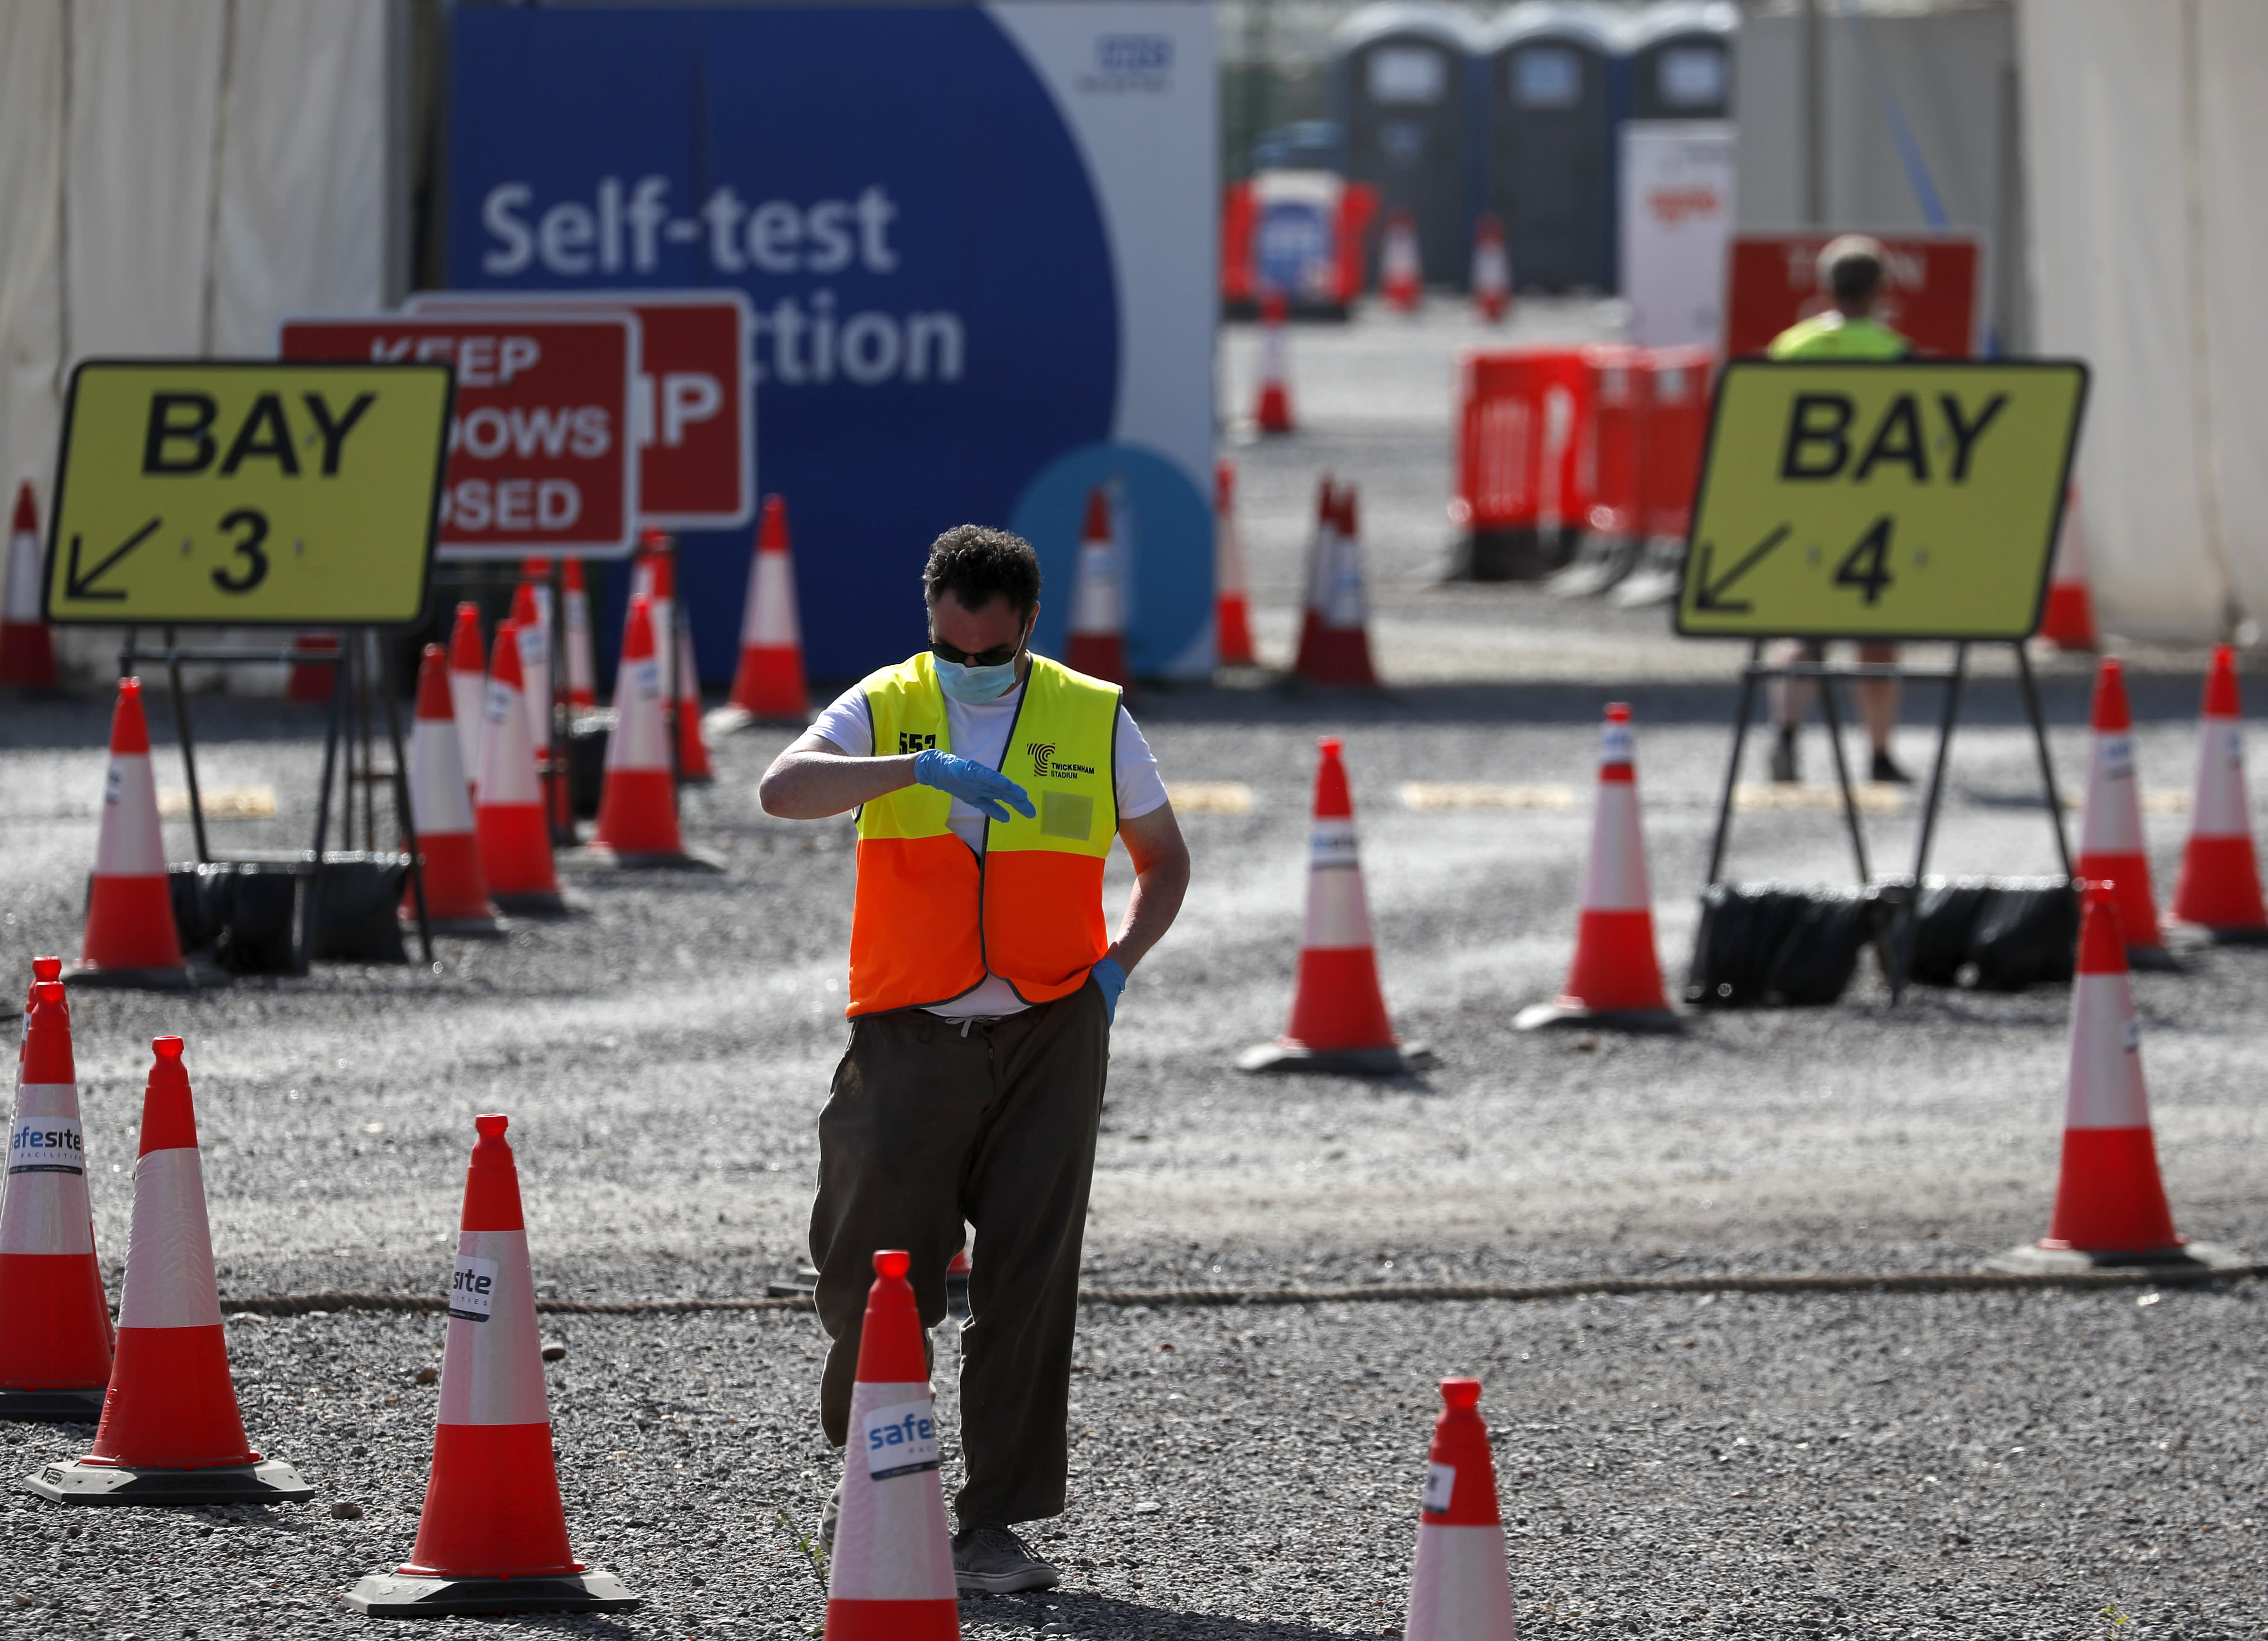 A staff member waits at empty lanes of a Covid-19 drive thru testing facility at Twickenham stadium in London, Thursday, Sept. 17, 2020. Britain has imposed tougher restrictions on people and businesses in parts of northeastern England on Thursday as the nation attempts to stem the spread of COVID-19, although some testing facilities remain under-utilised. (AP Photo/Frank Augstein)